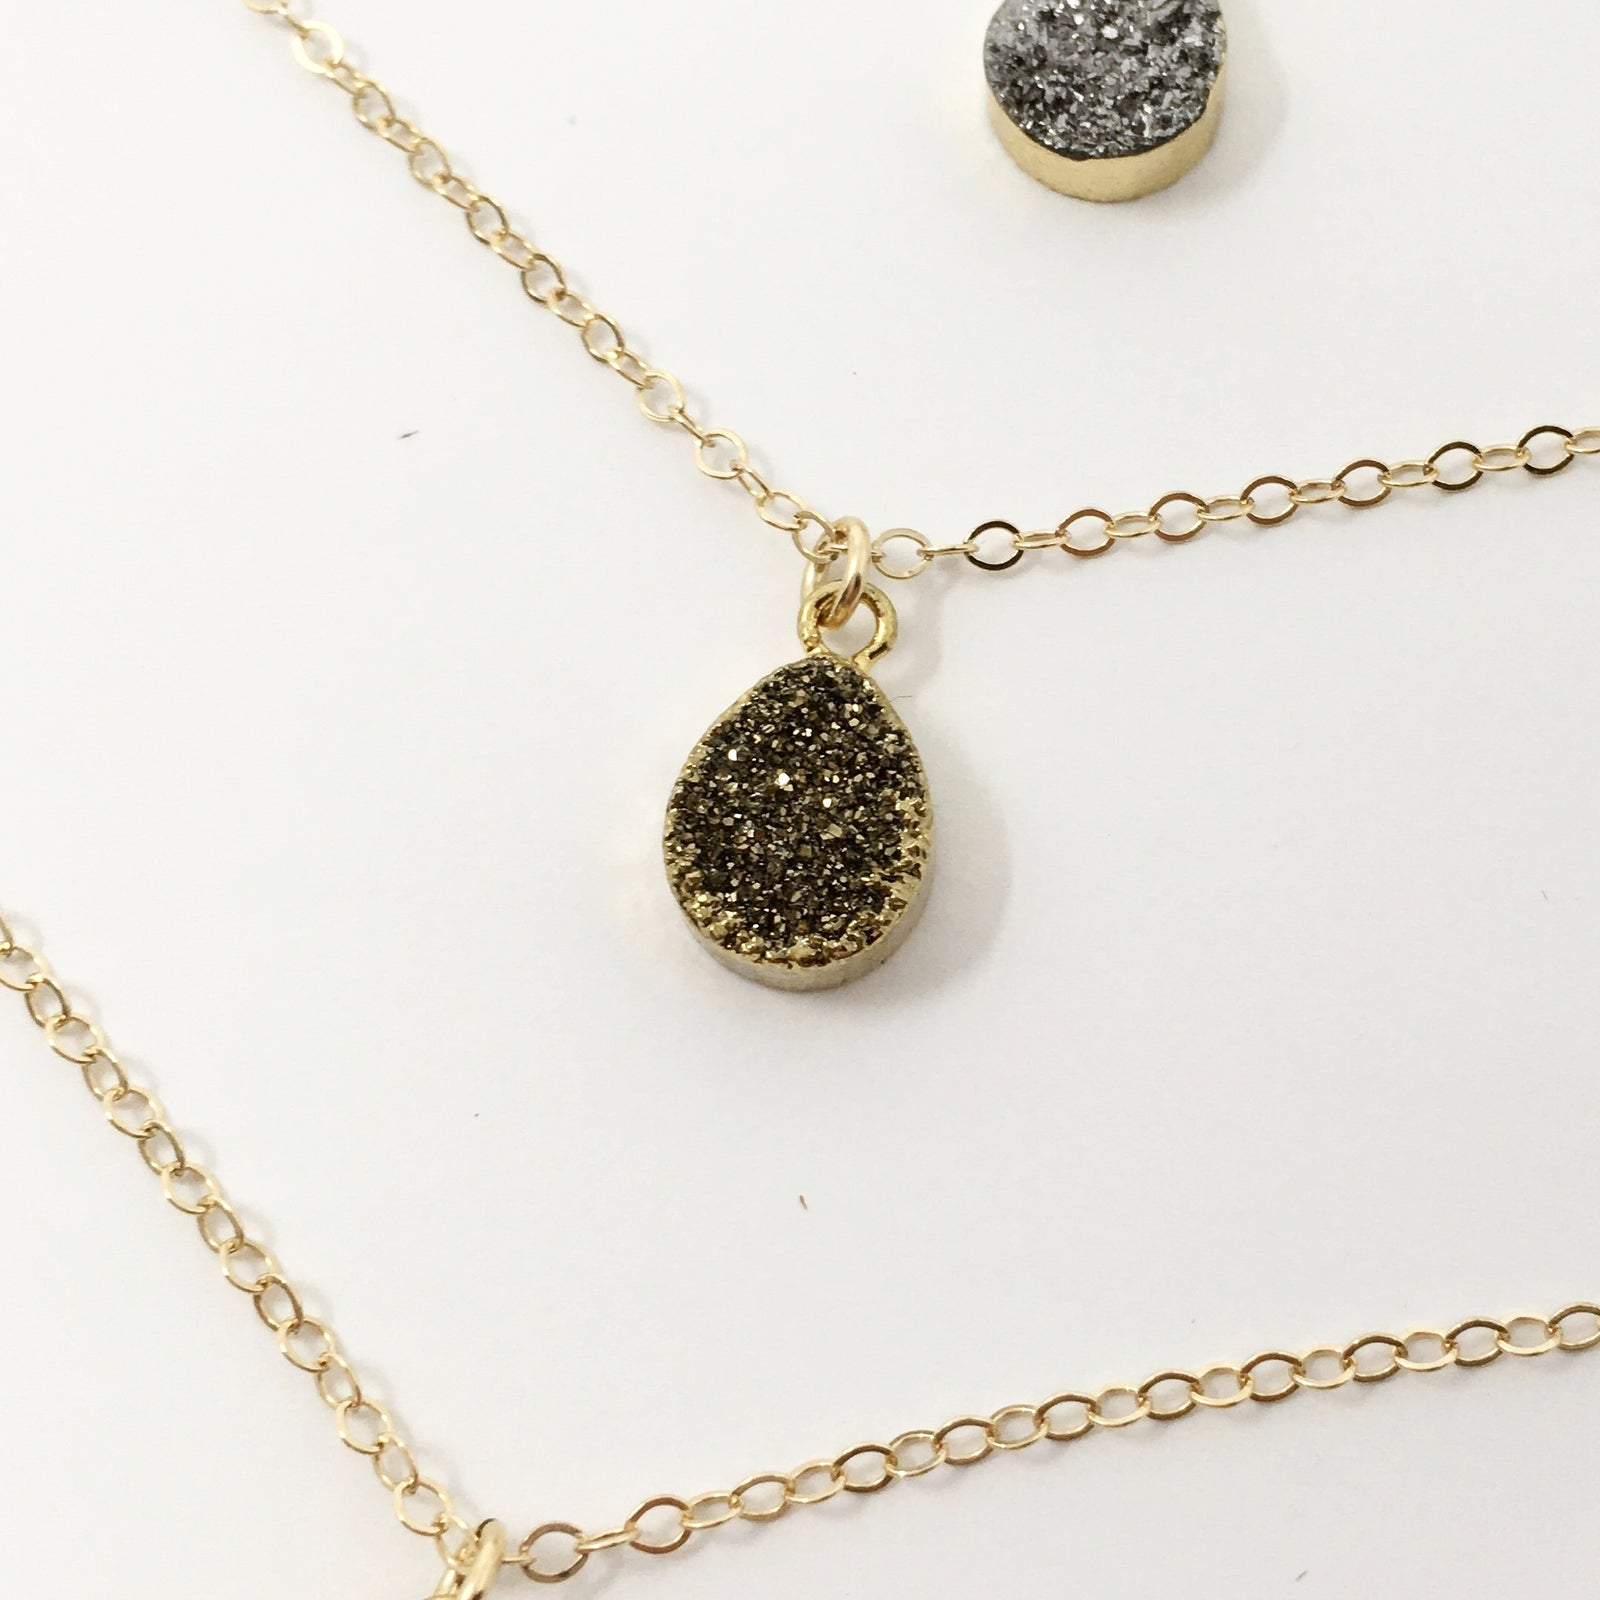 STONE 14K GOLD-FILLED NECKLACES | COLOR OPTIONS